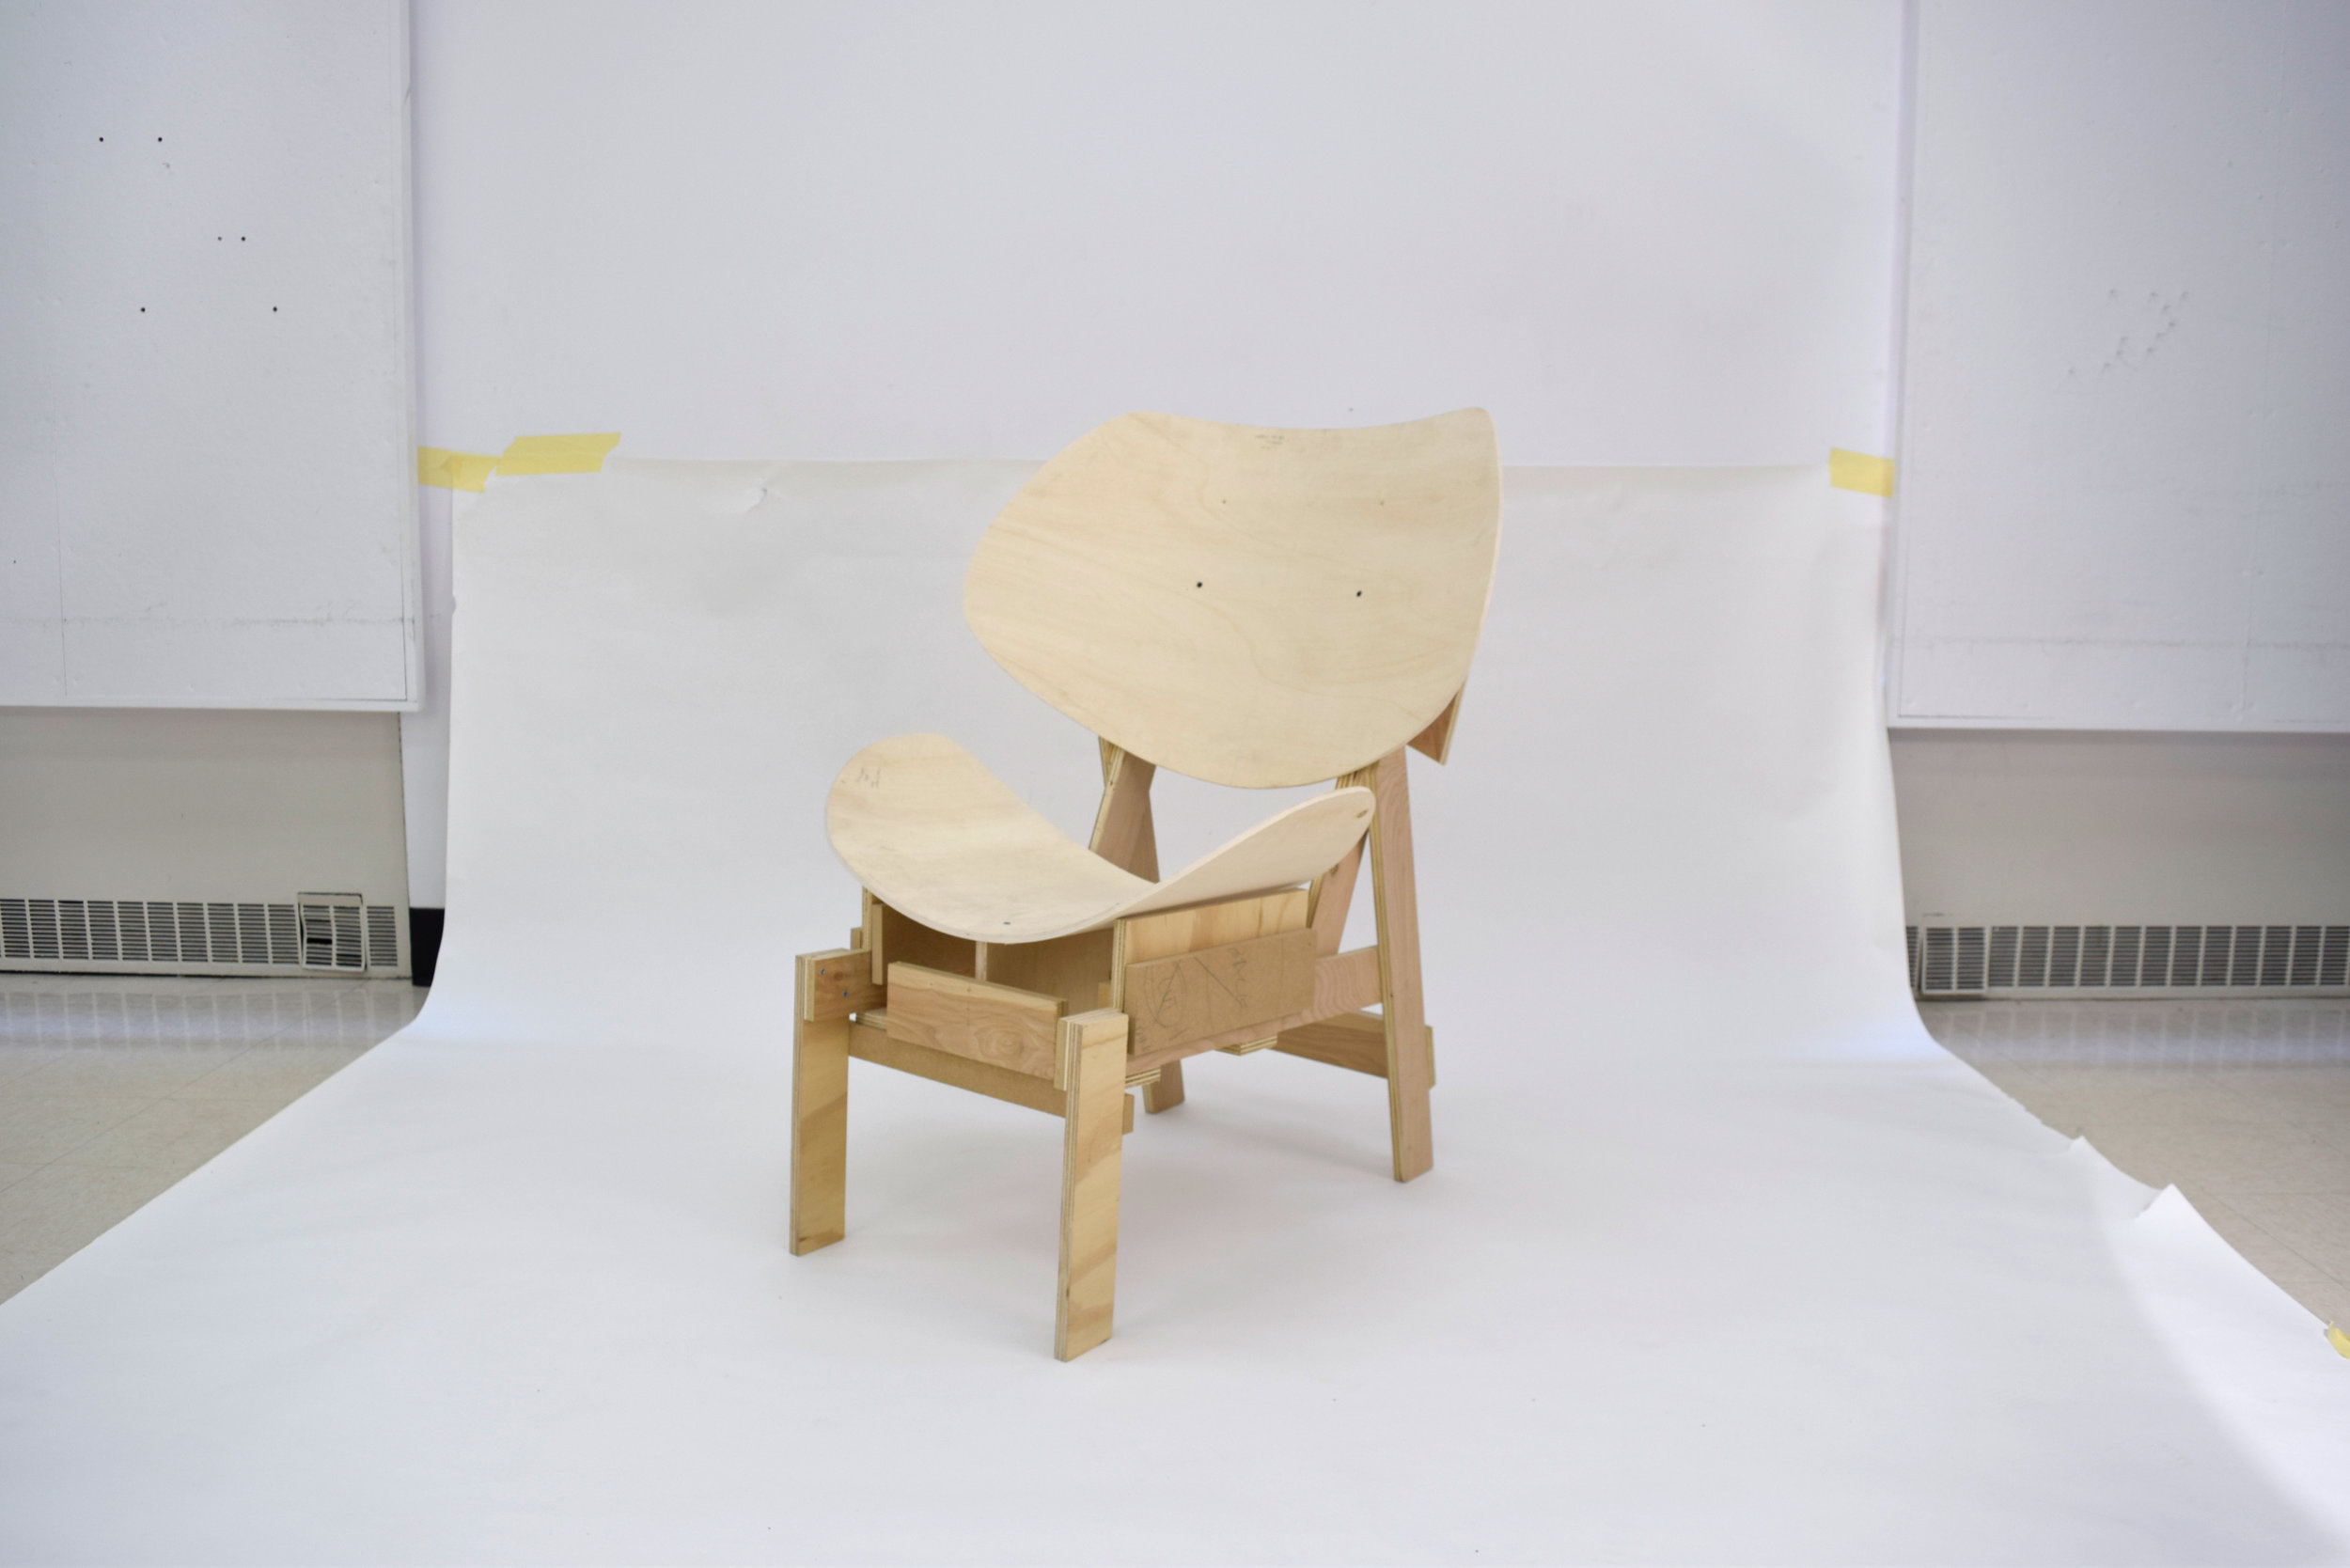 Chair Mockup /   bendable ply, ply + mdf scraps ; seat depth and back height are manually adjusted